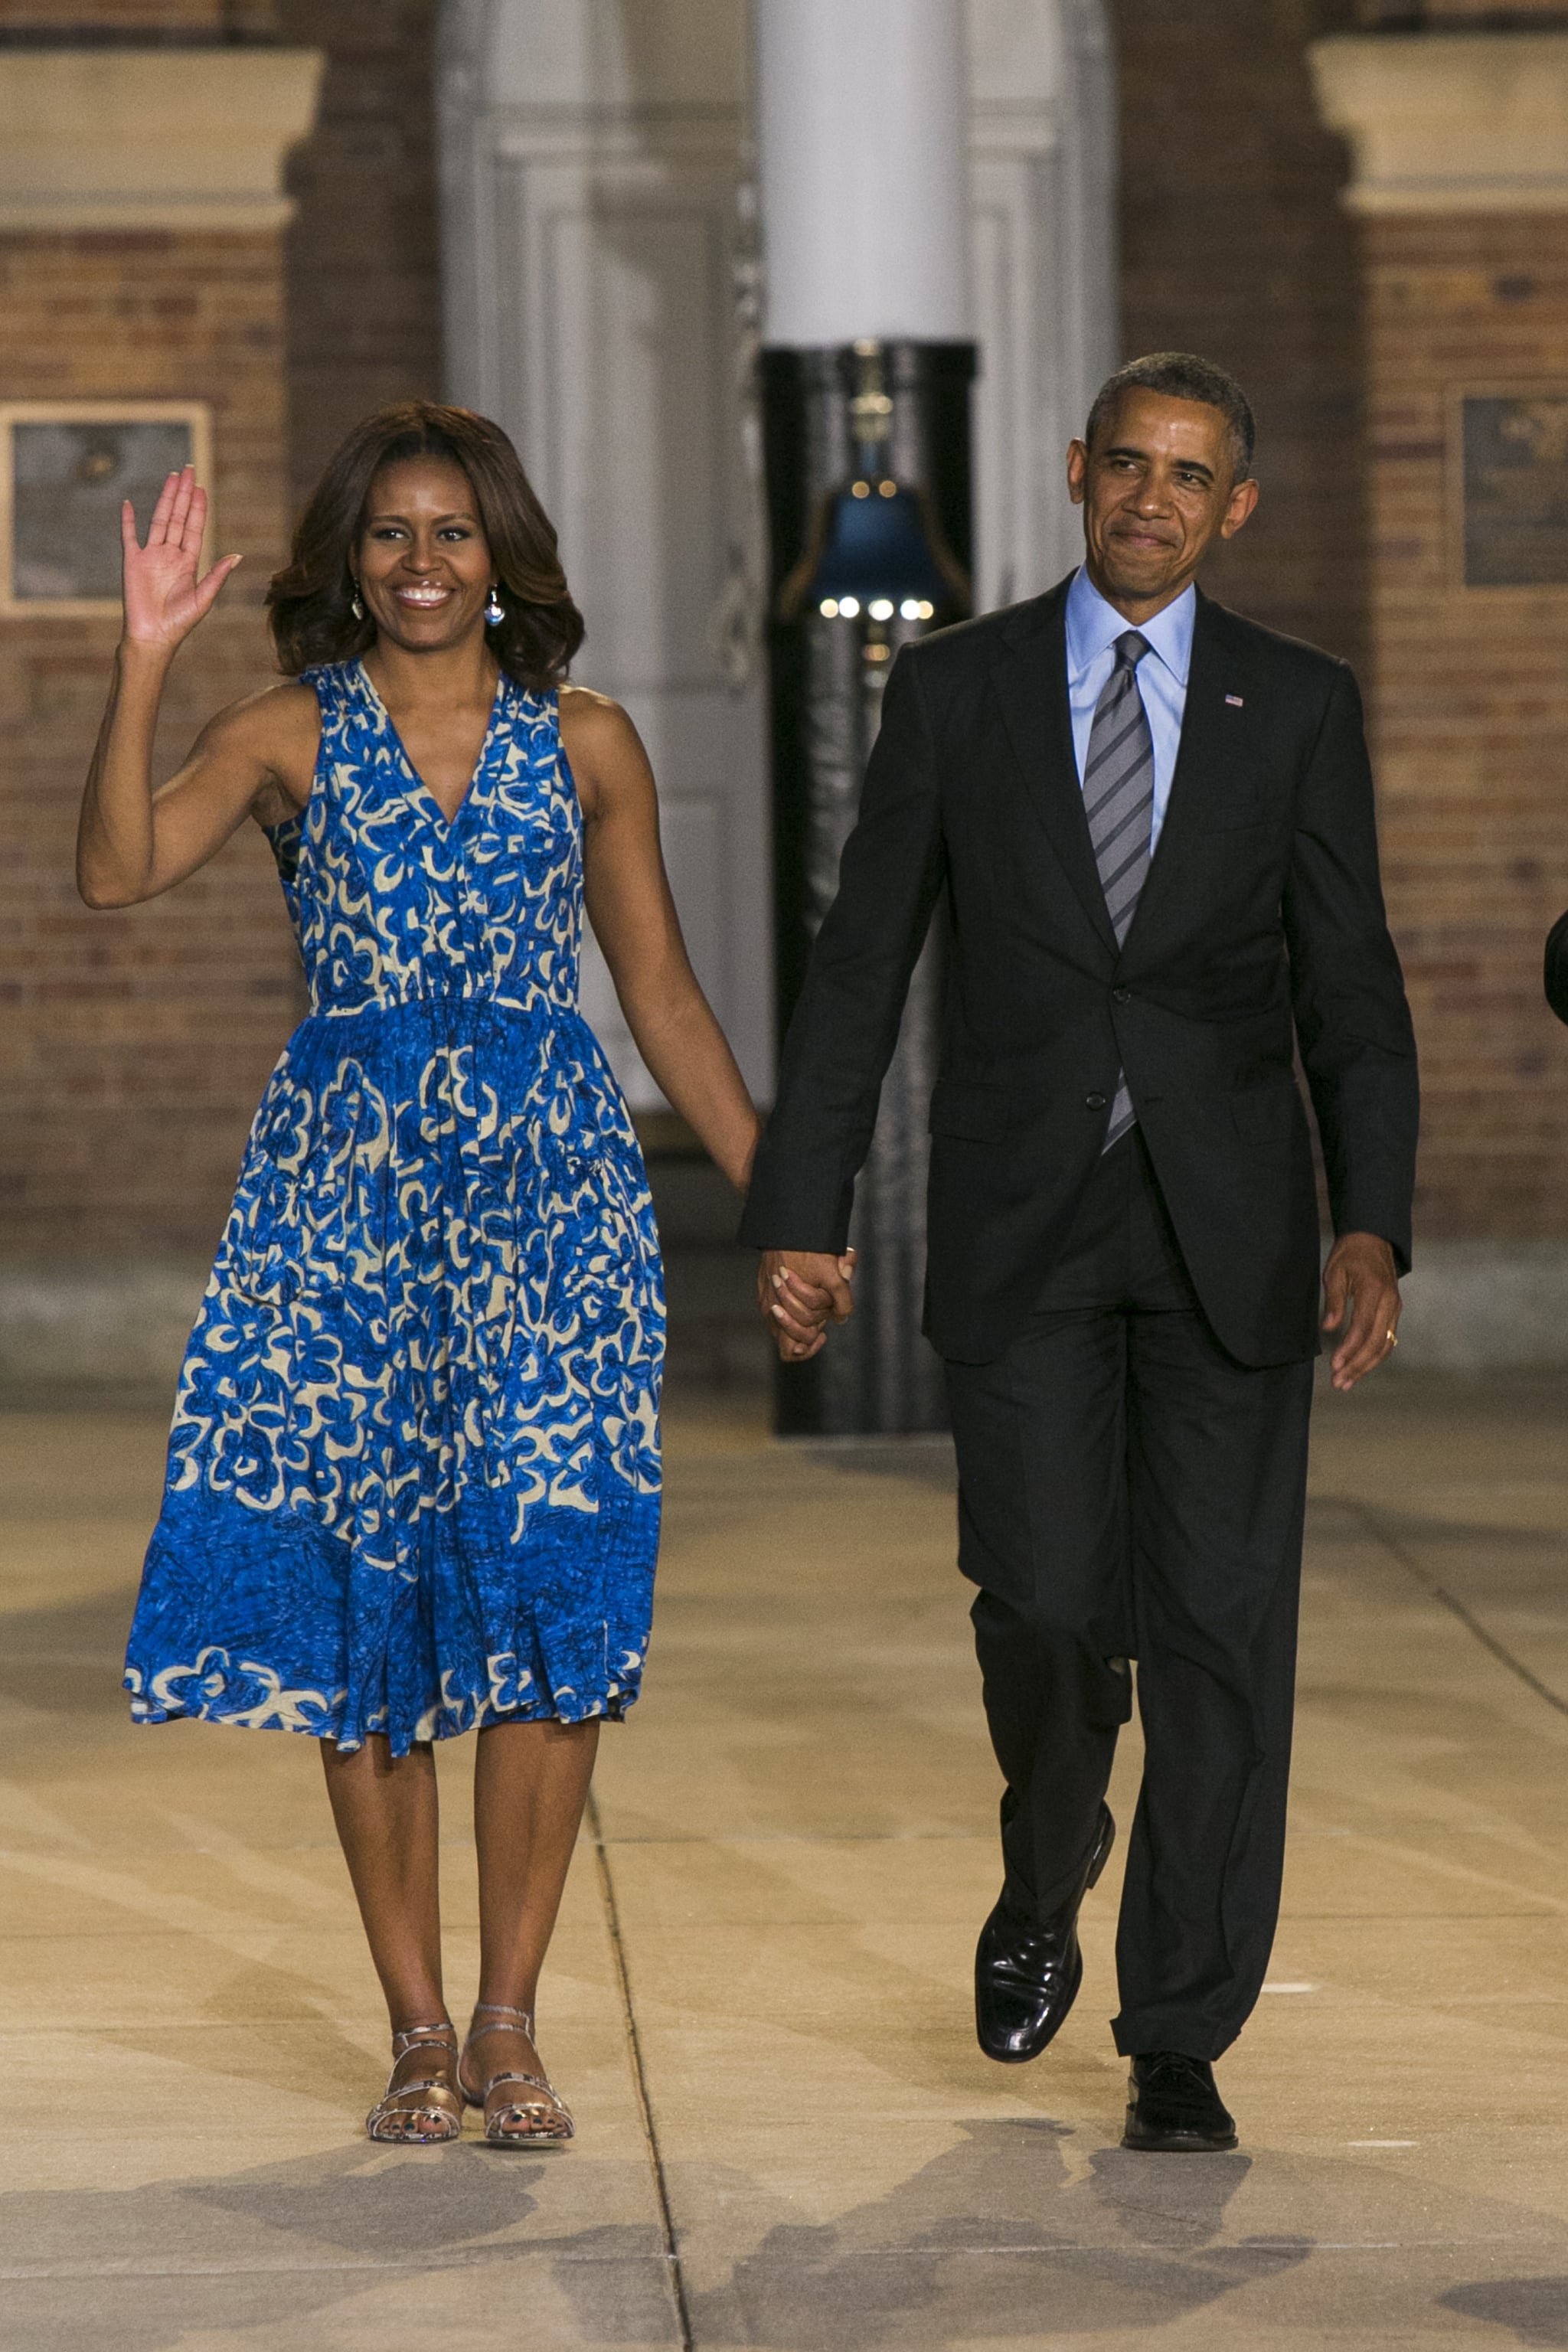 This isn't the first time Michelle wore this cobalt, floral-printed Tracy Reese frock. She wore it back in June 2013, but the look feels fresh with a pair of strappy sandals in a contrasting pattern.